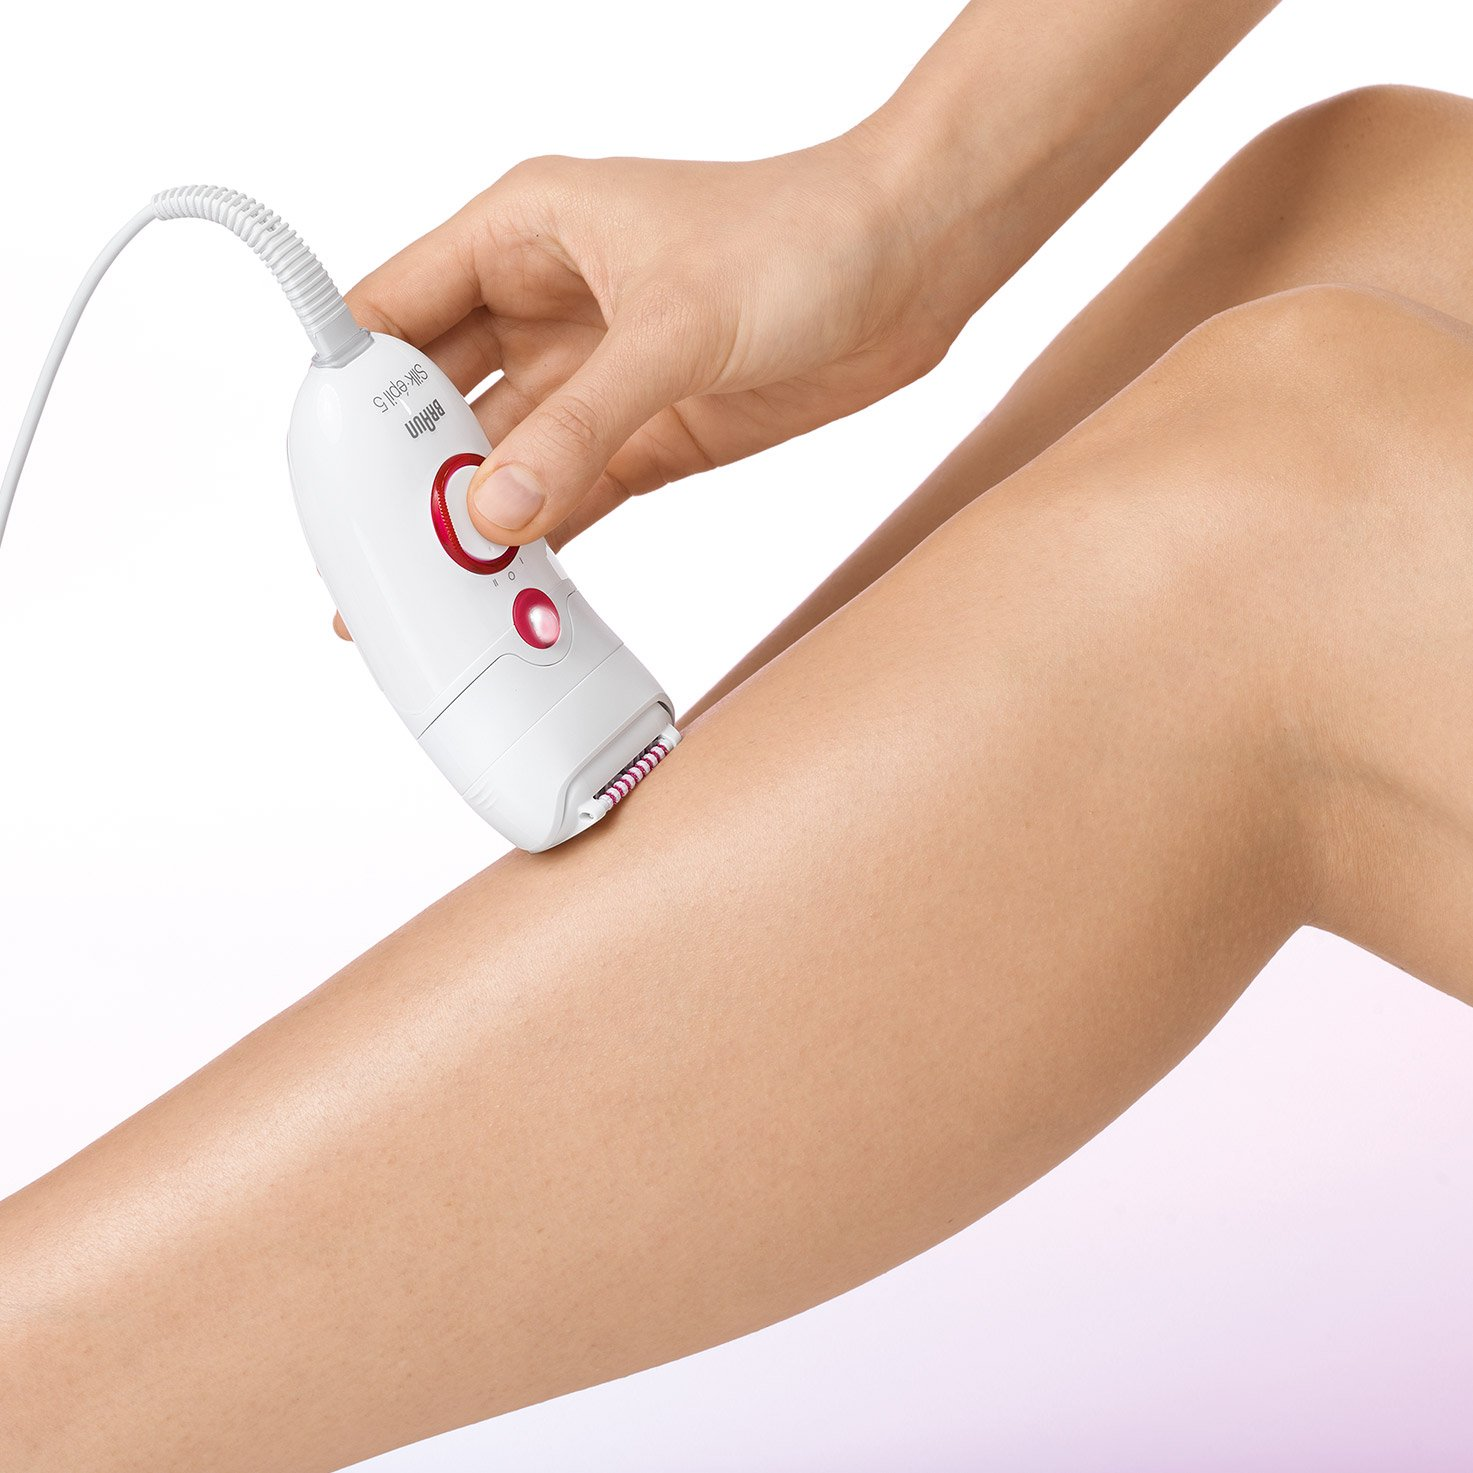 Silk-épil 5 - 5280 Legs and Body Epilator